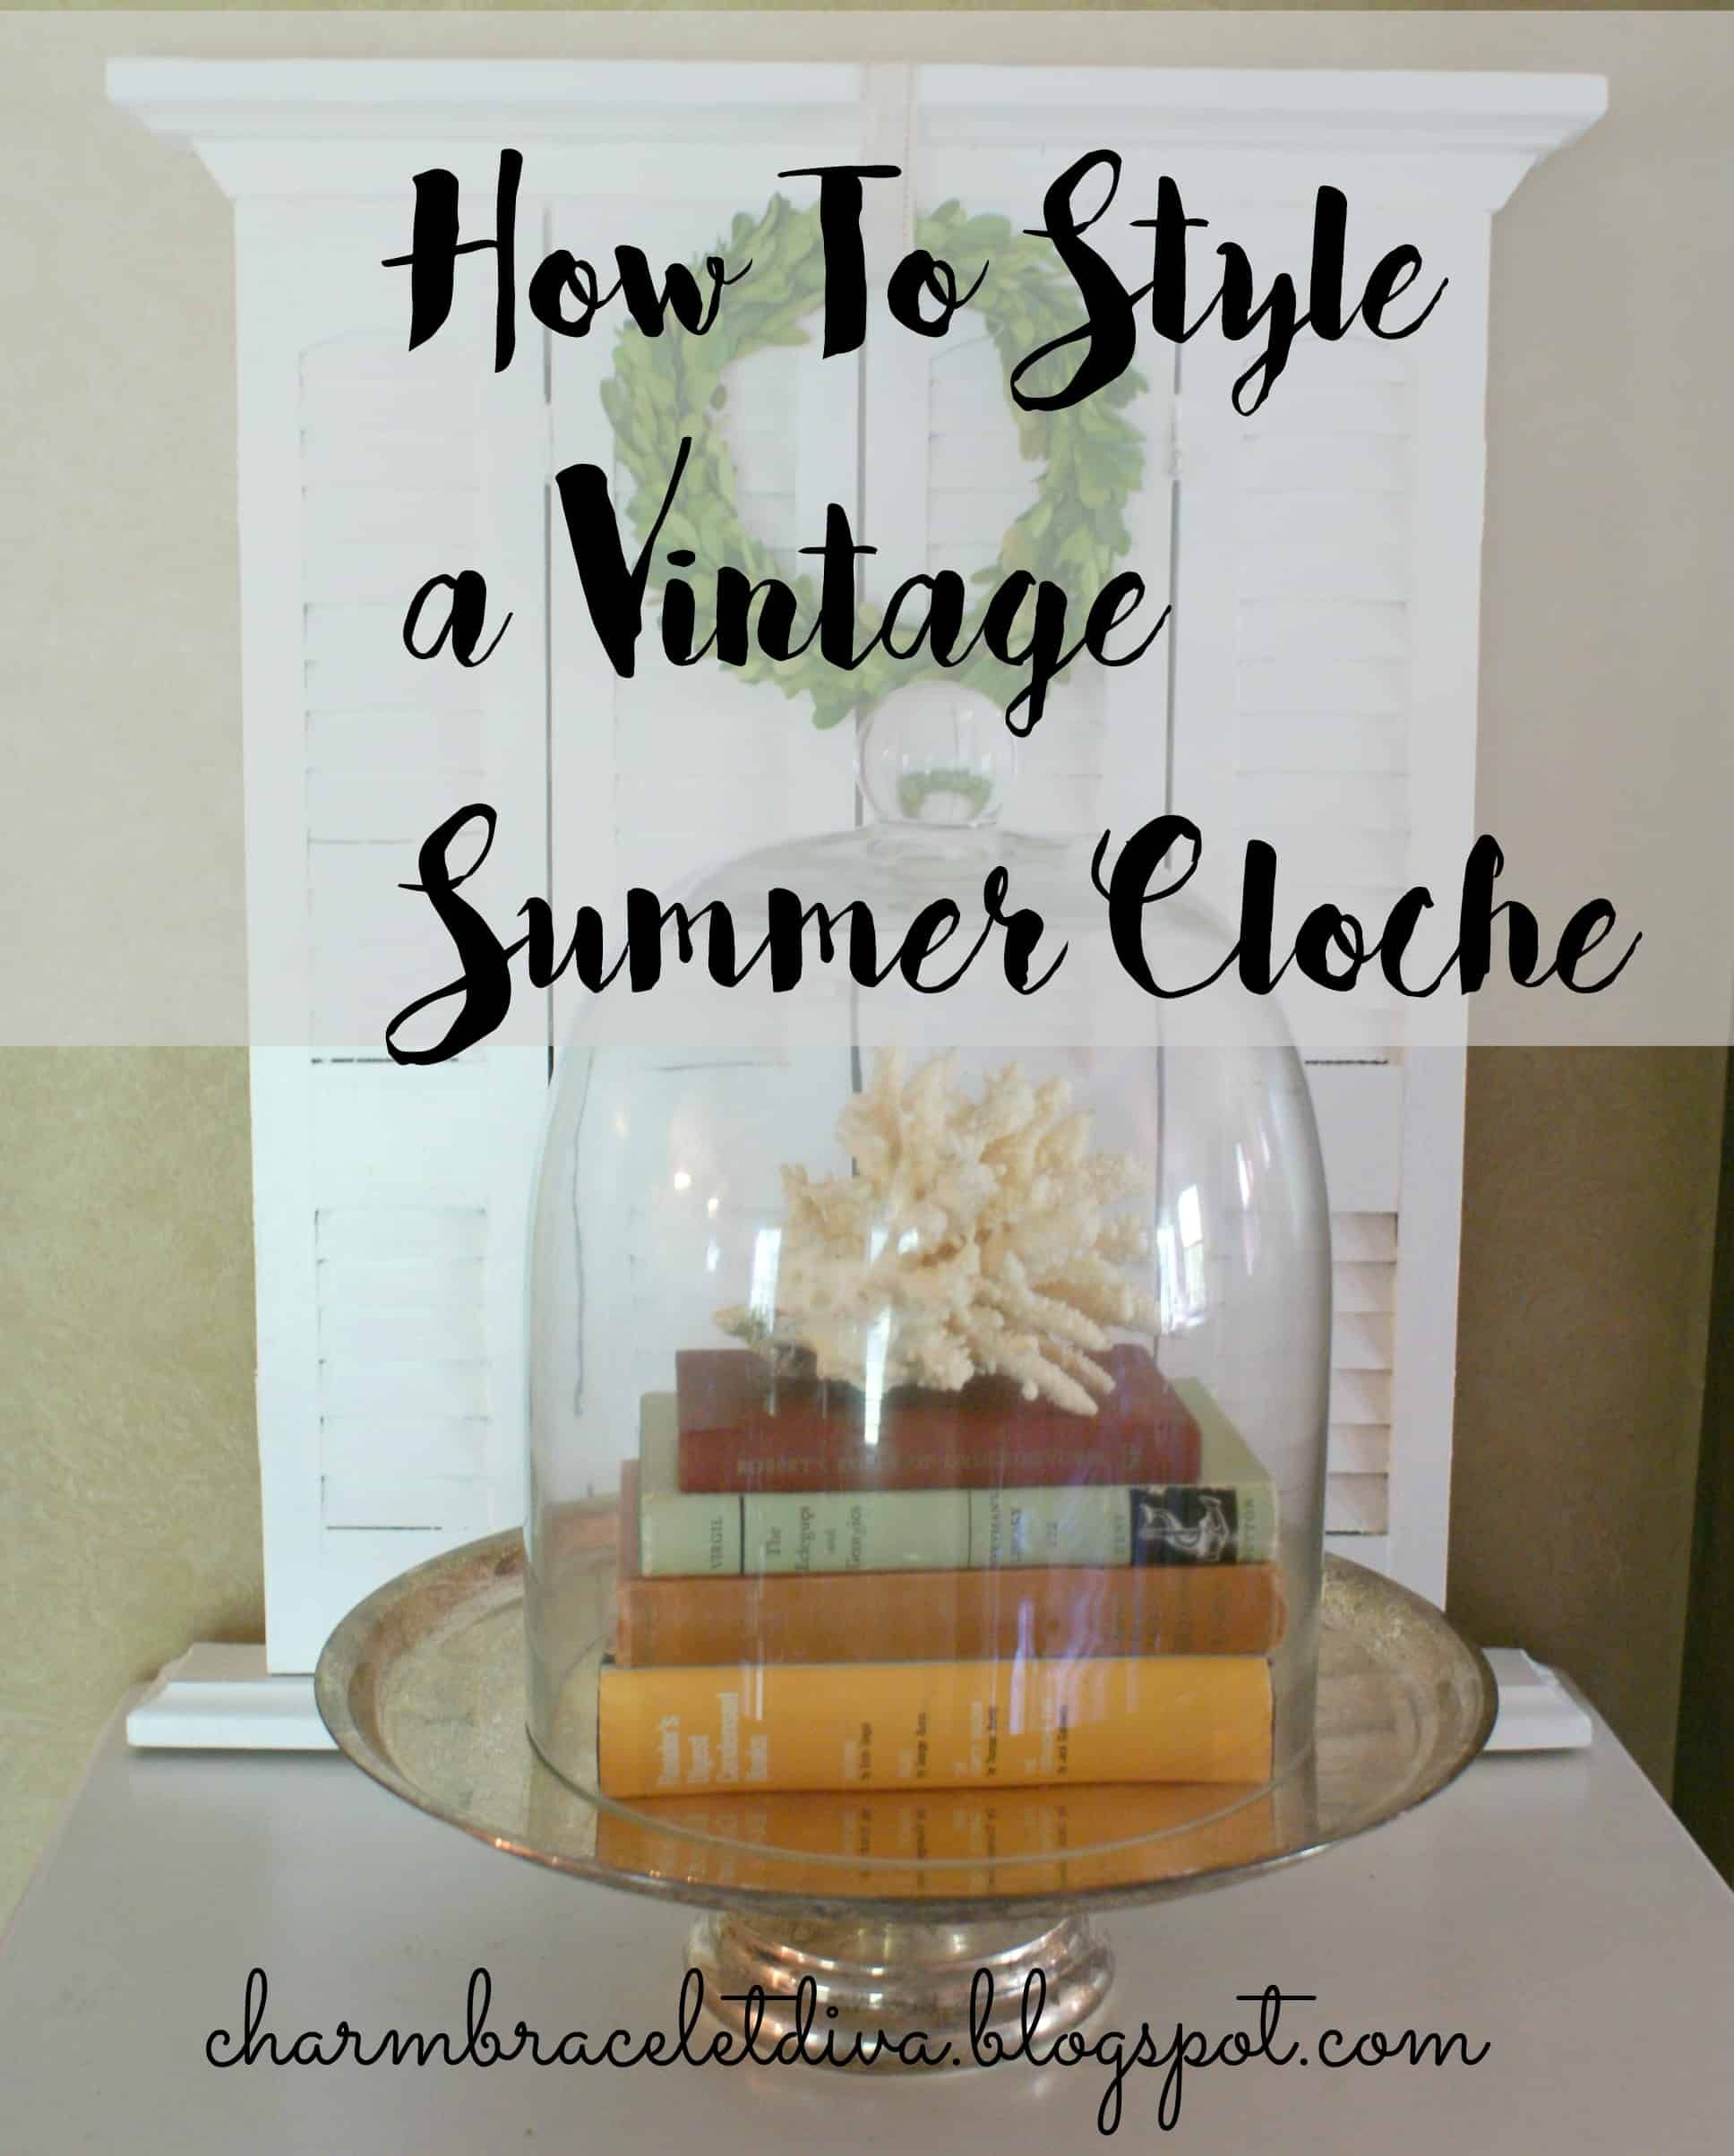 How to Style a Summer Cloche by Charm Bracelet Diva